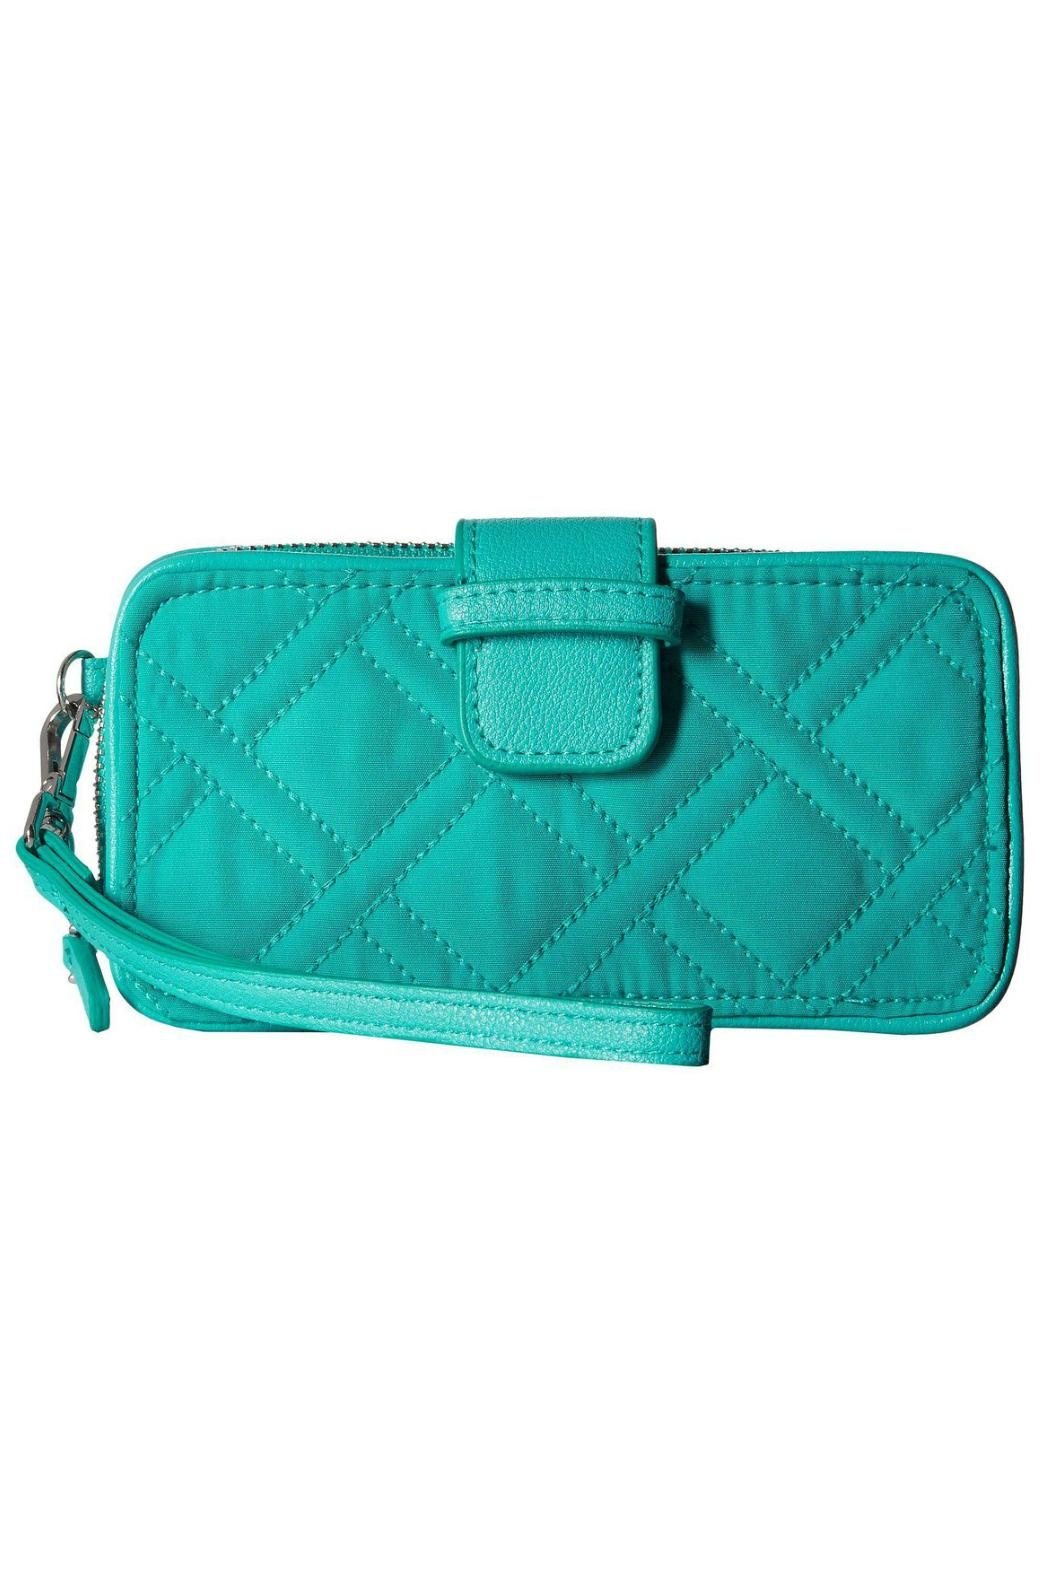 Vera Bradley Turquoise Sea Smartphone-Wristlet - Front Cropped Image